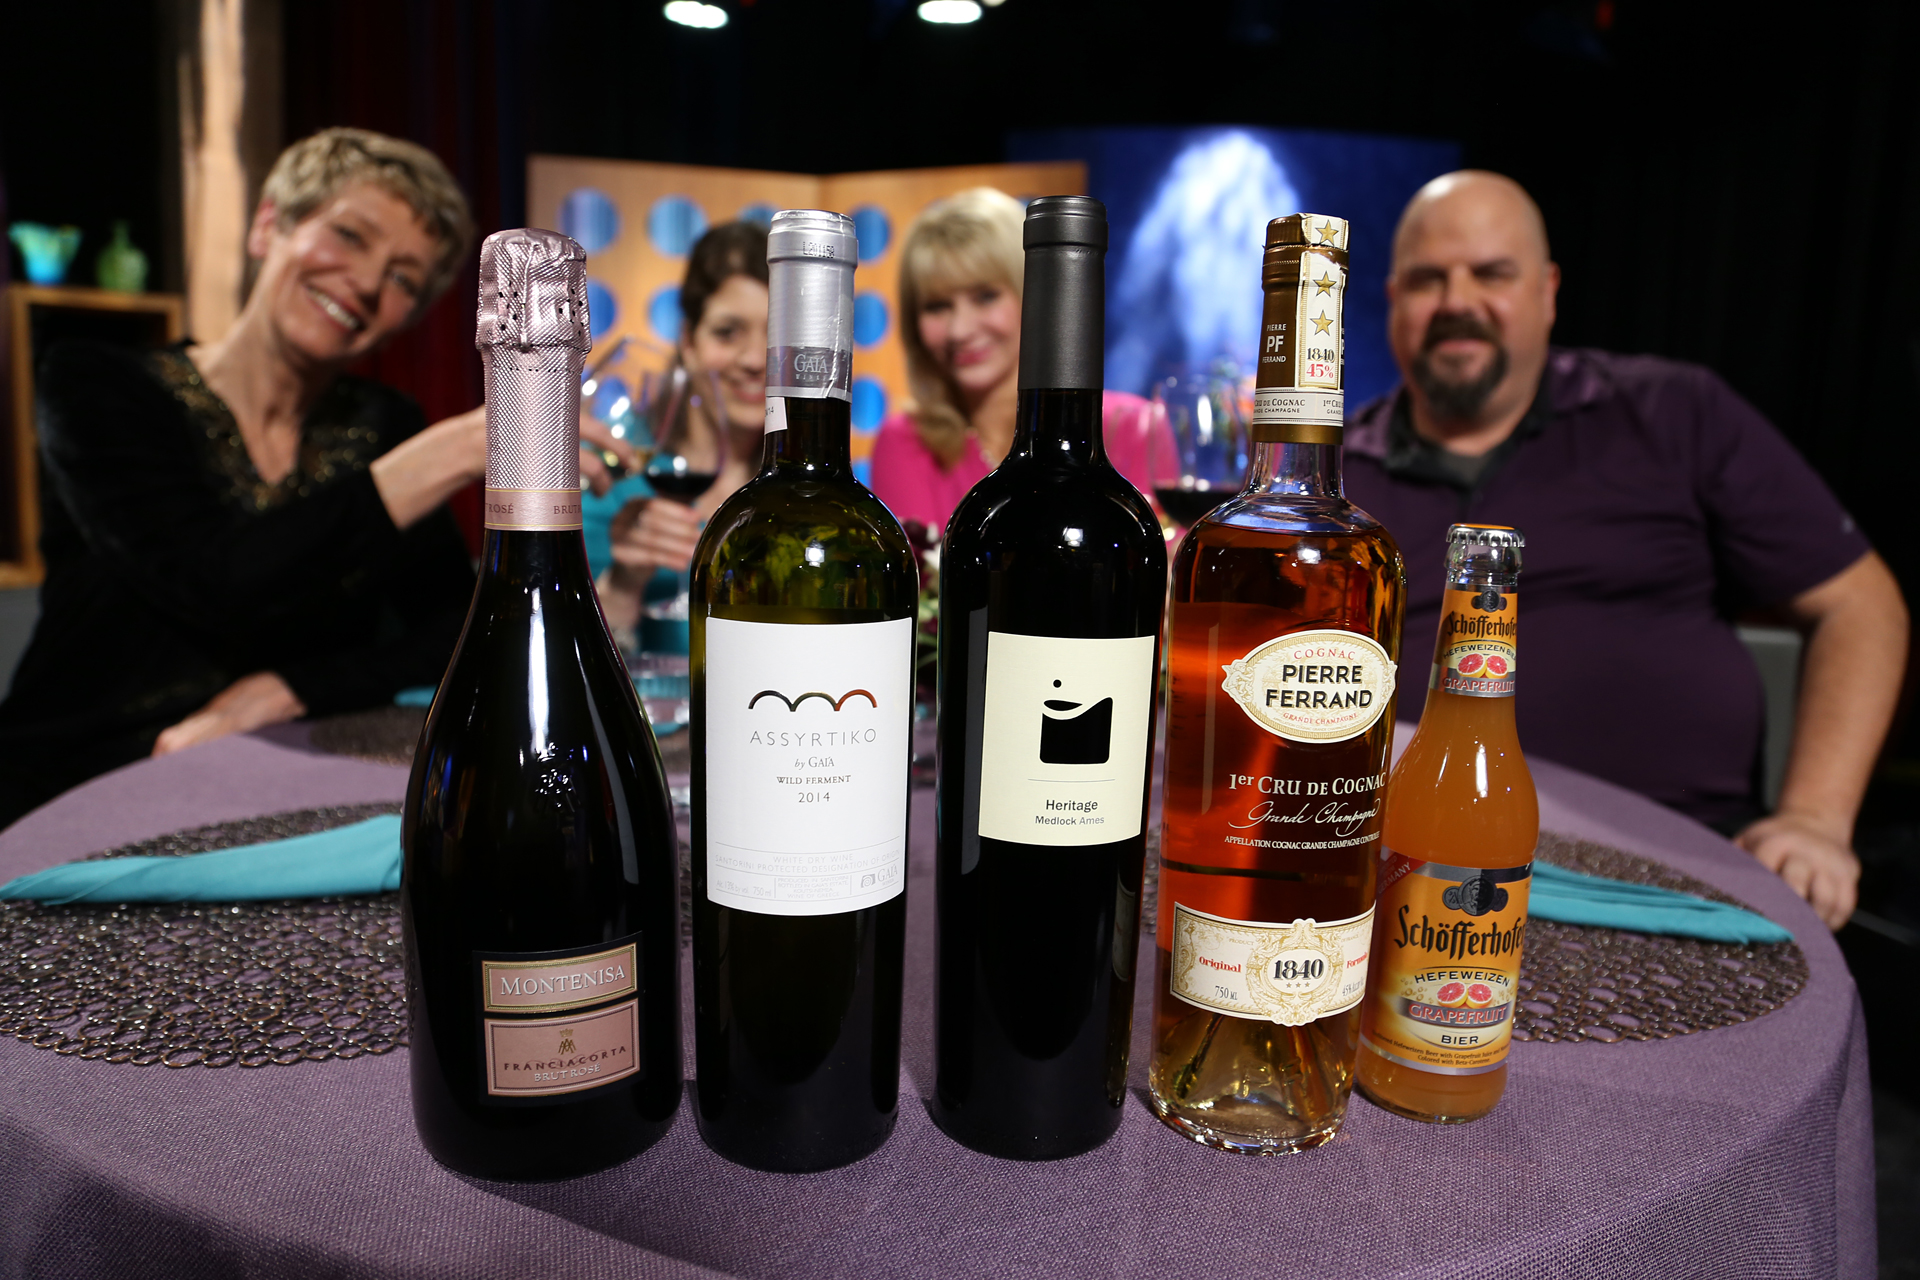 Wines that guests drank on the set of the premiere episode of season 12.